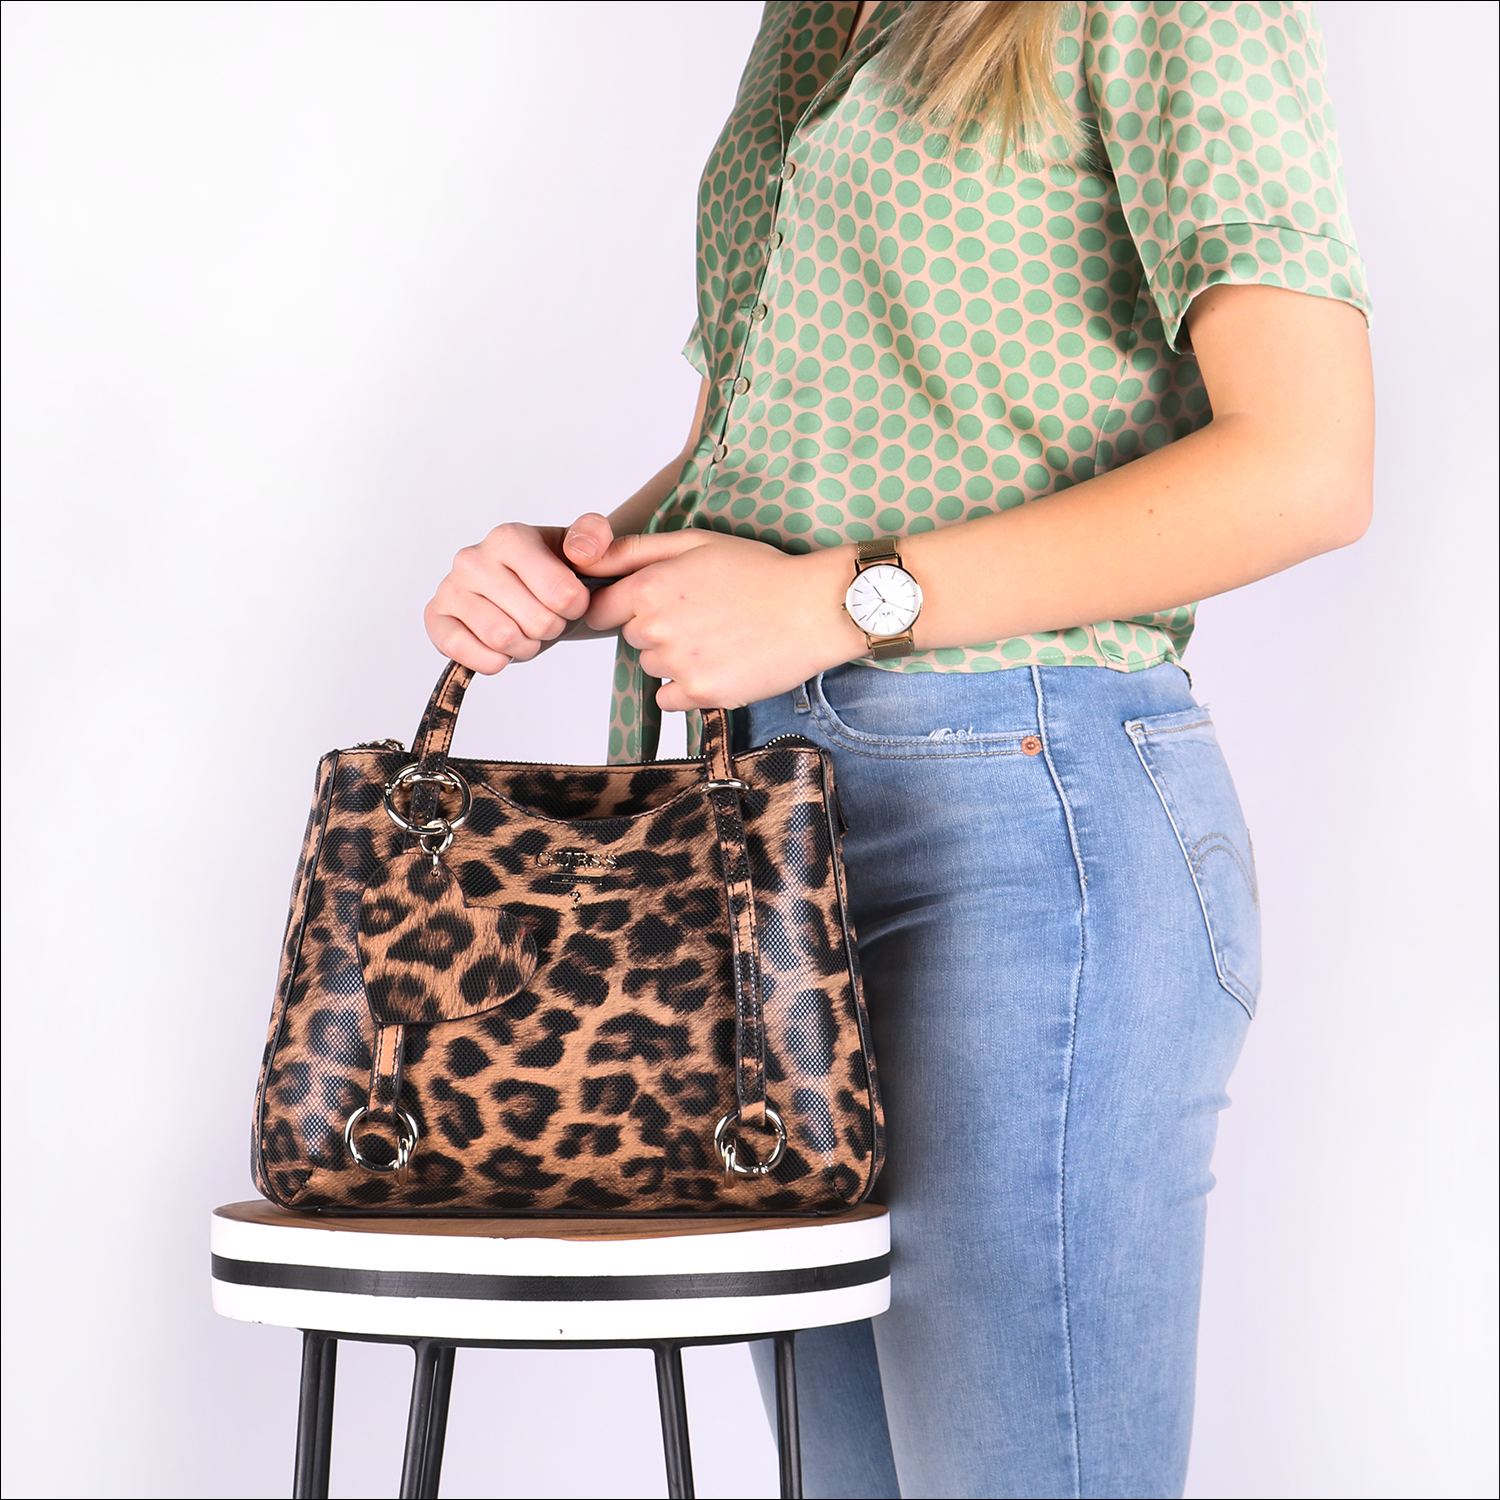 Sac Omoda À Main En Leanne Guess Small Satchel Society Marron BexCrdoW